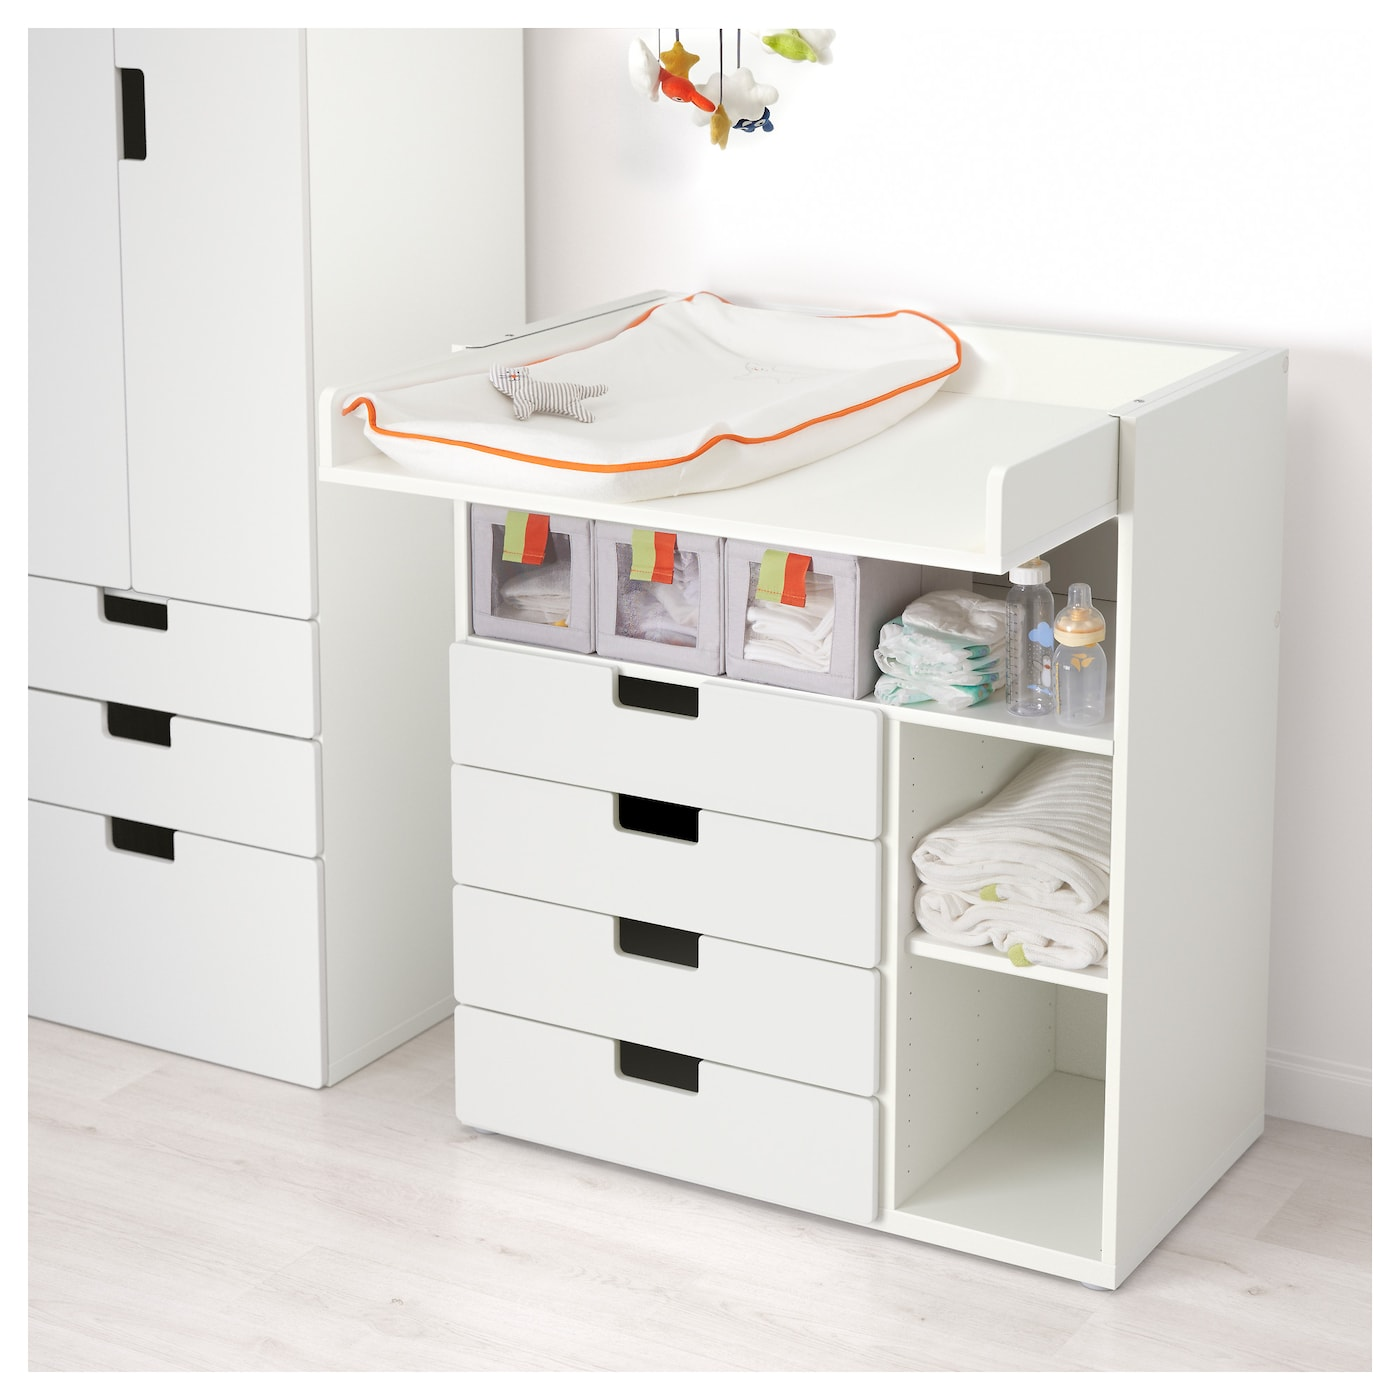 Ikea Mandal As Changing Table